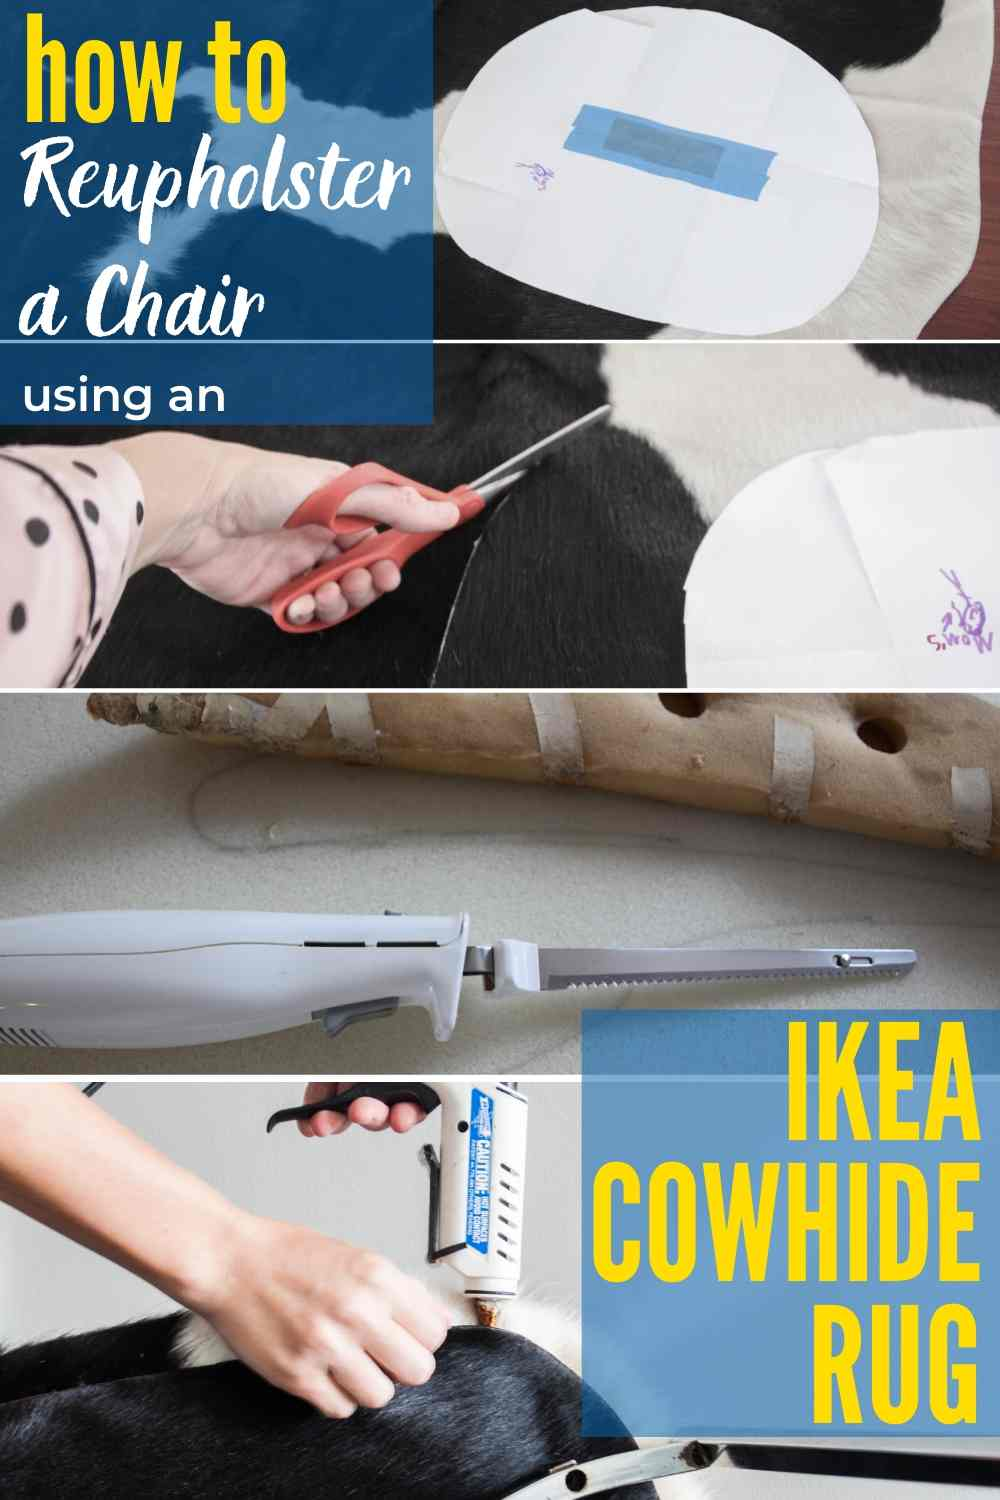 three stacked pictures detailing DIY process for how to reupholster a chair using an Ikea cowhide rug. At top paper template for cushion on cowhide rug. Second, cutting cowhide rug with scissors. Third, stapling cowhide rug to bottom of cushion.